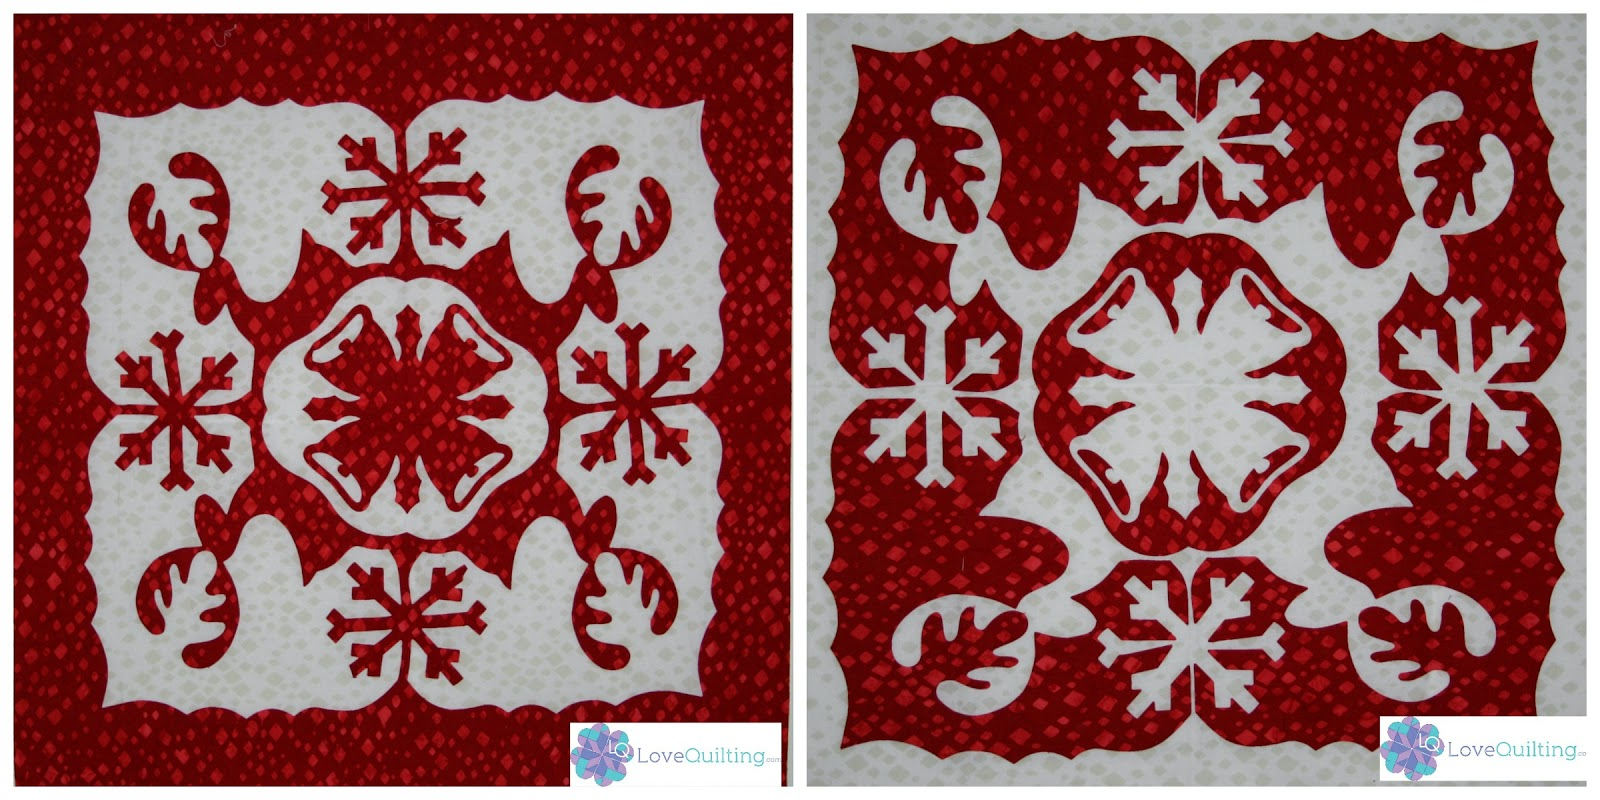 http://www.lovequilting.com/product-category/kits/